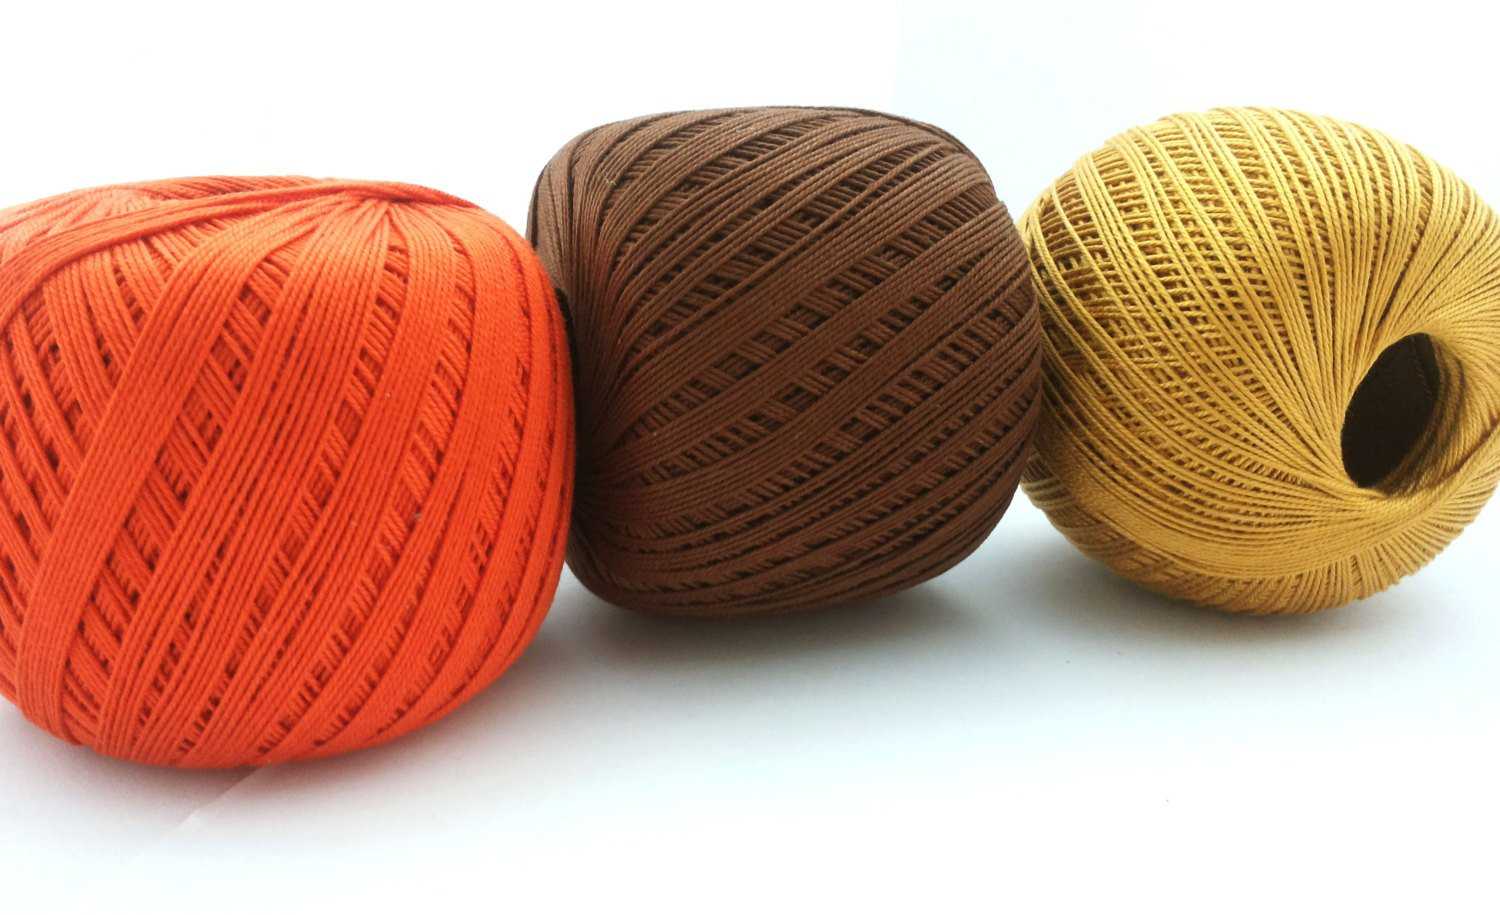 Crochet Threads Size 10 Awesome Crochet Cotton Thread Size 10 50g X 250m 3ply Mercerized Of Top 42 Ideas Crochet Threads Size 10